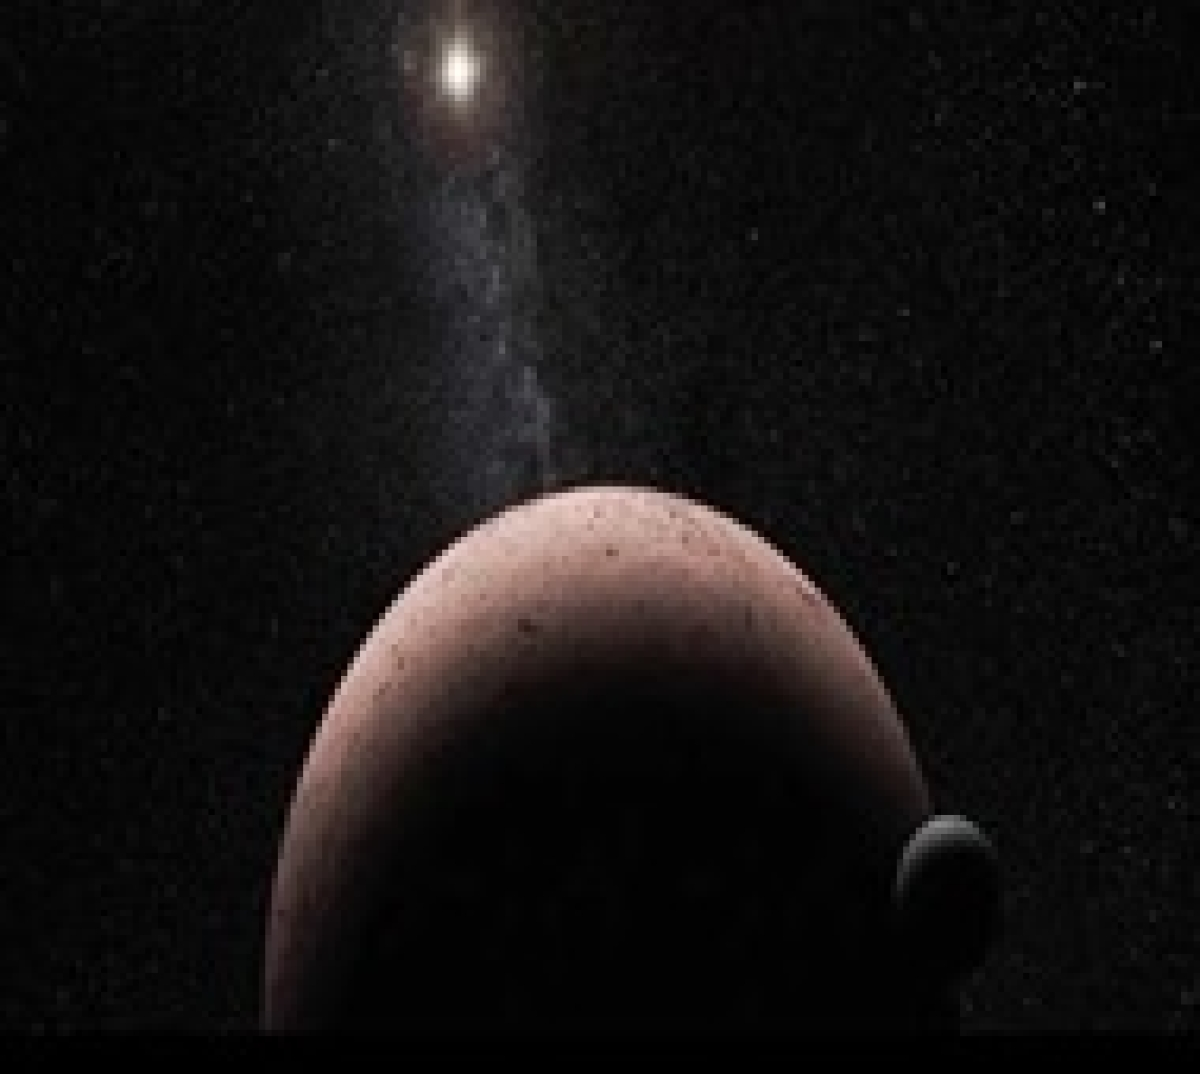 Dwarf planet Makemake has its own moon!